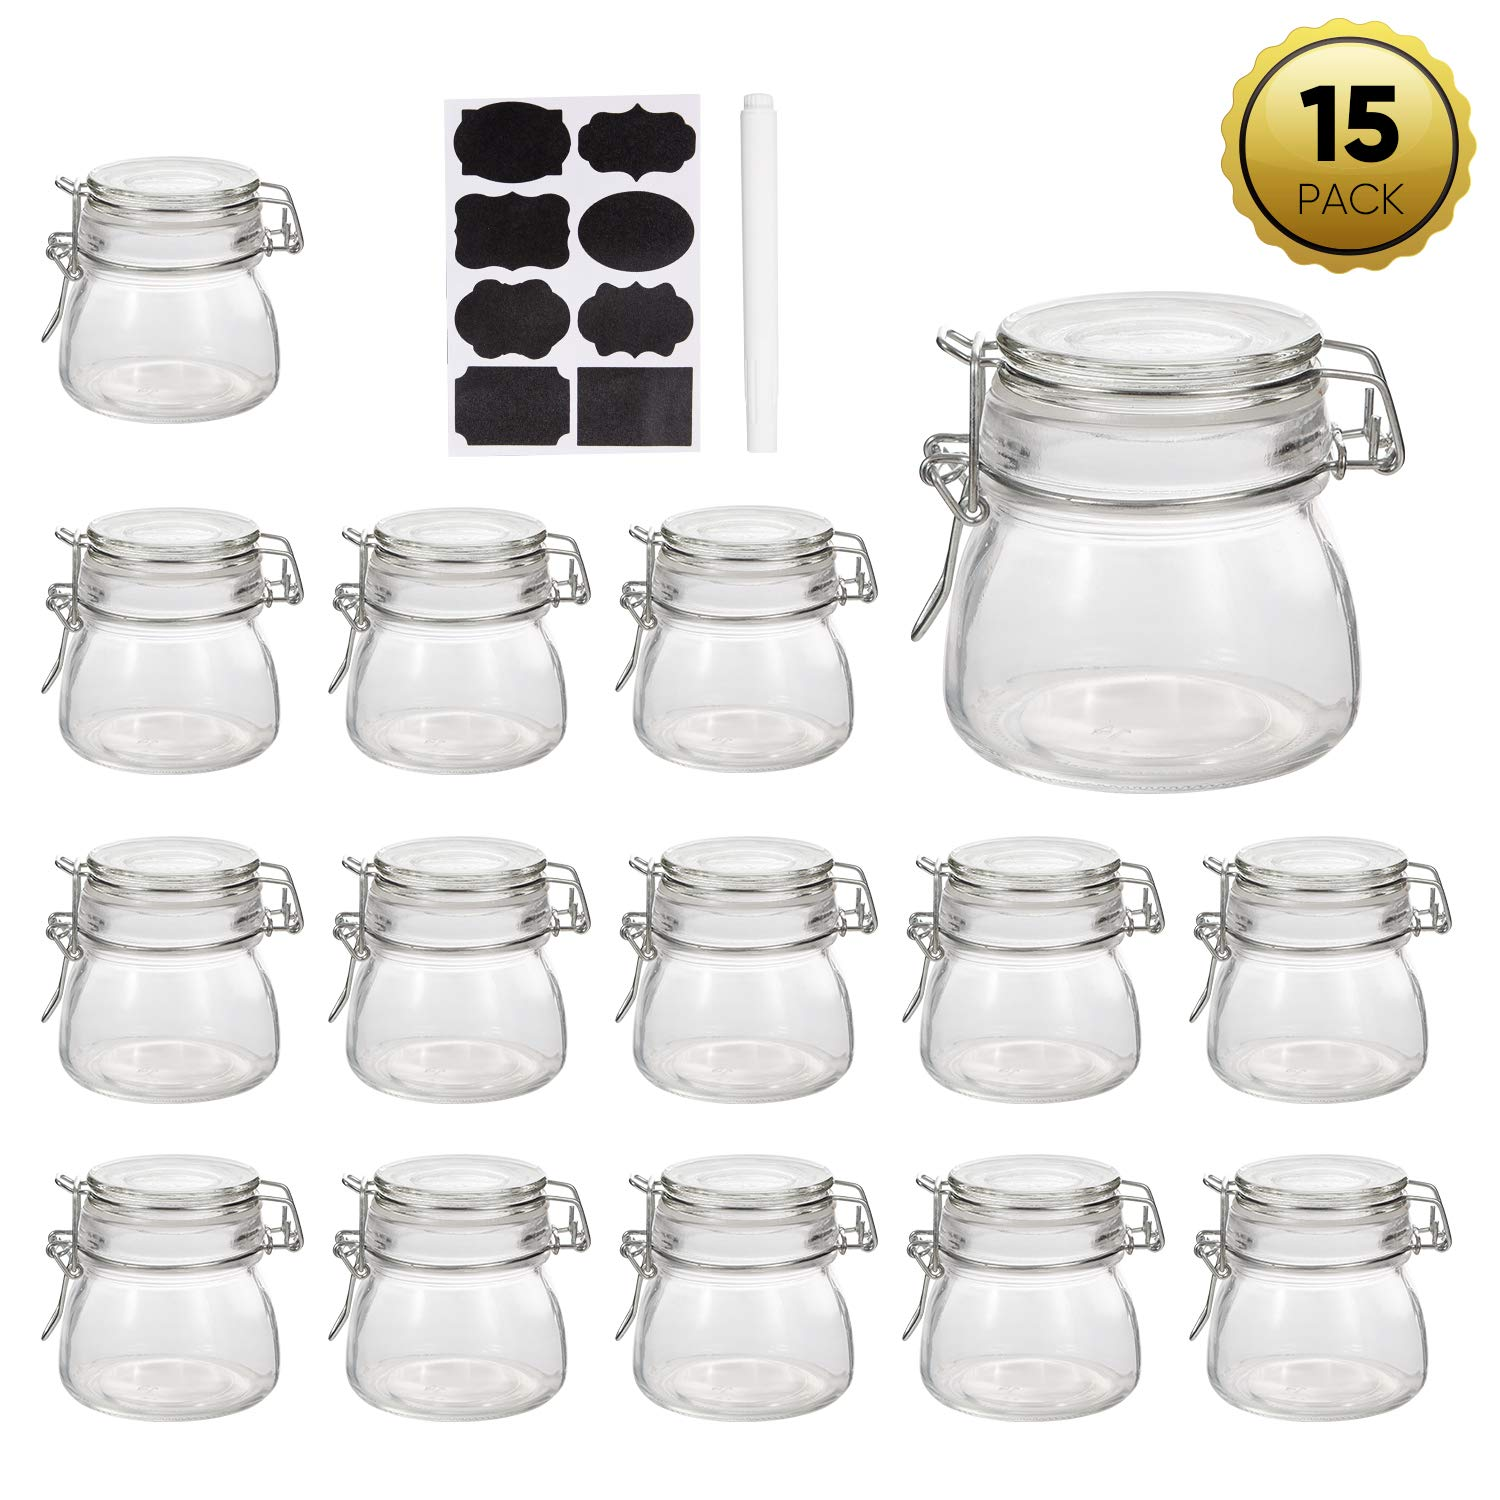 Mini Mason Jars,Accguan 5 OZ Glass Jars with Rubber Gasket and Hinged Lid,Small Canning JarsIdeal for storage,coffee,beans,sugar,snacks,candy,coookies,dry food,Set of 15